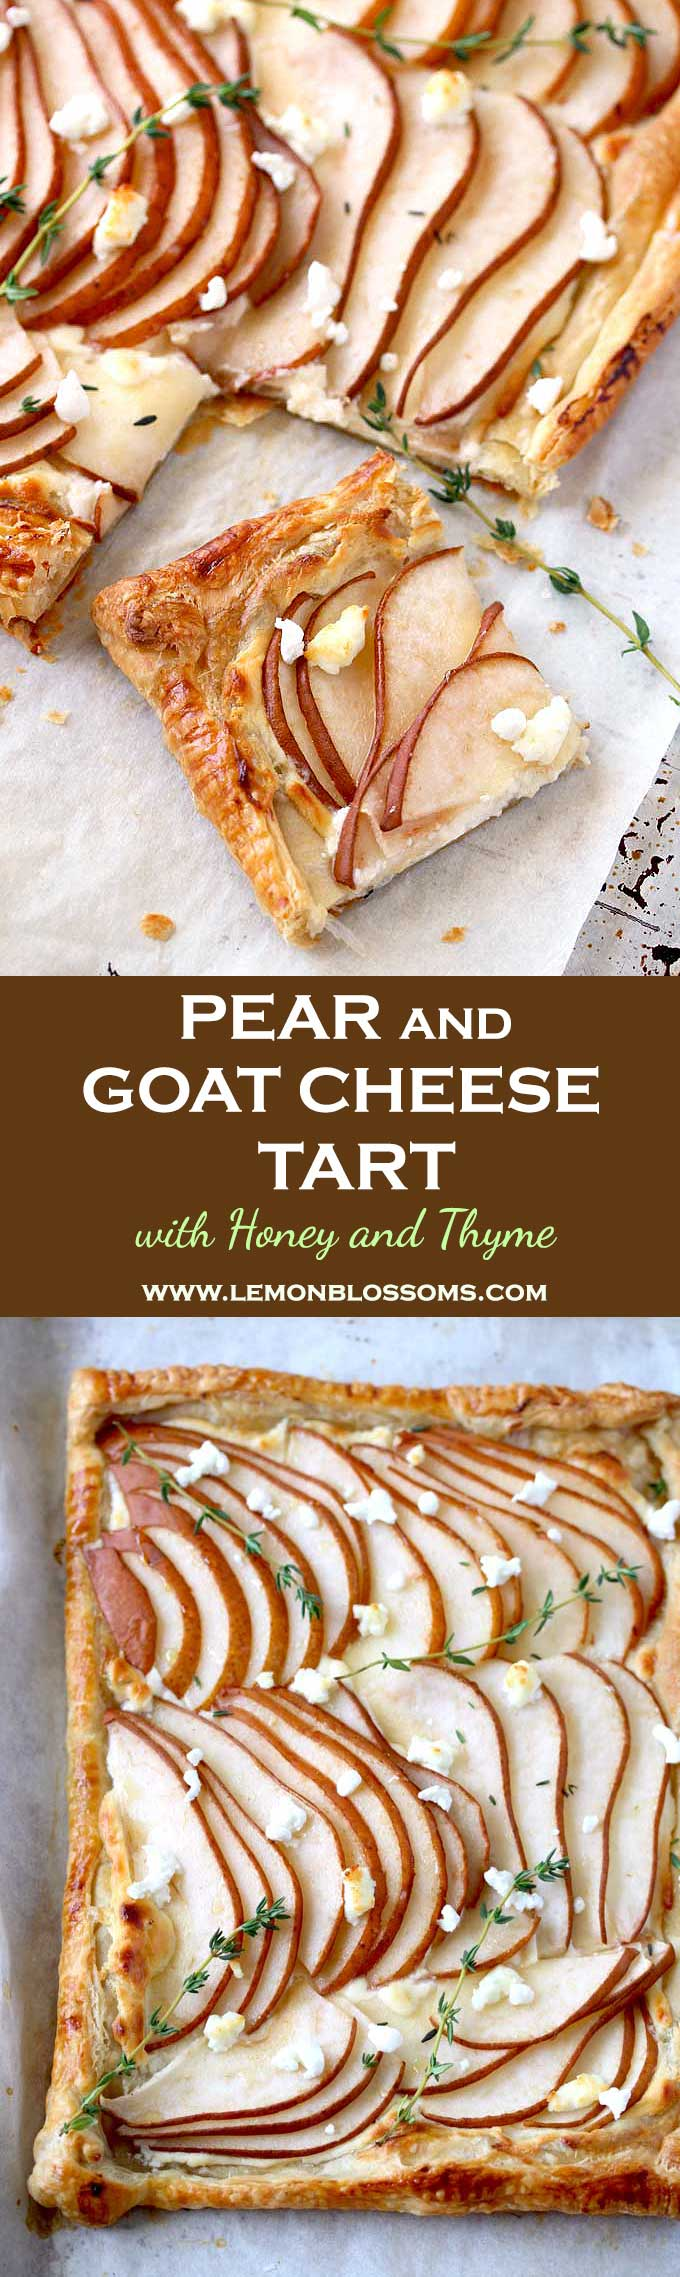 This Pear and Goat Cheese Tart is sweet and savory with a flaky and buttery puff pastry crust! A mixture of creamy and tangy goat and cream cheeses, sweet pears, fresh thyme and a drizzle of honey makes this the most delicious  fall appetizer or dessert! #appetizer #dessert #tart #pears #puffpastry #goatcheese